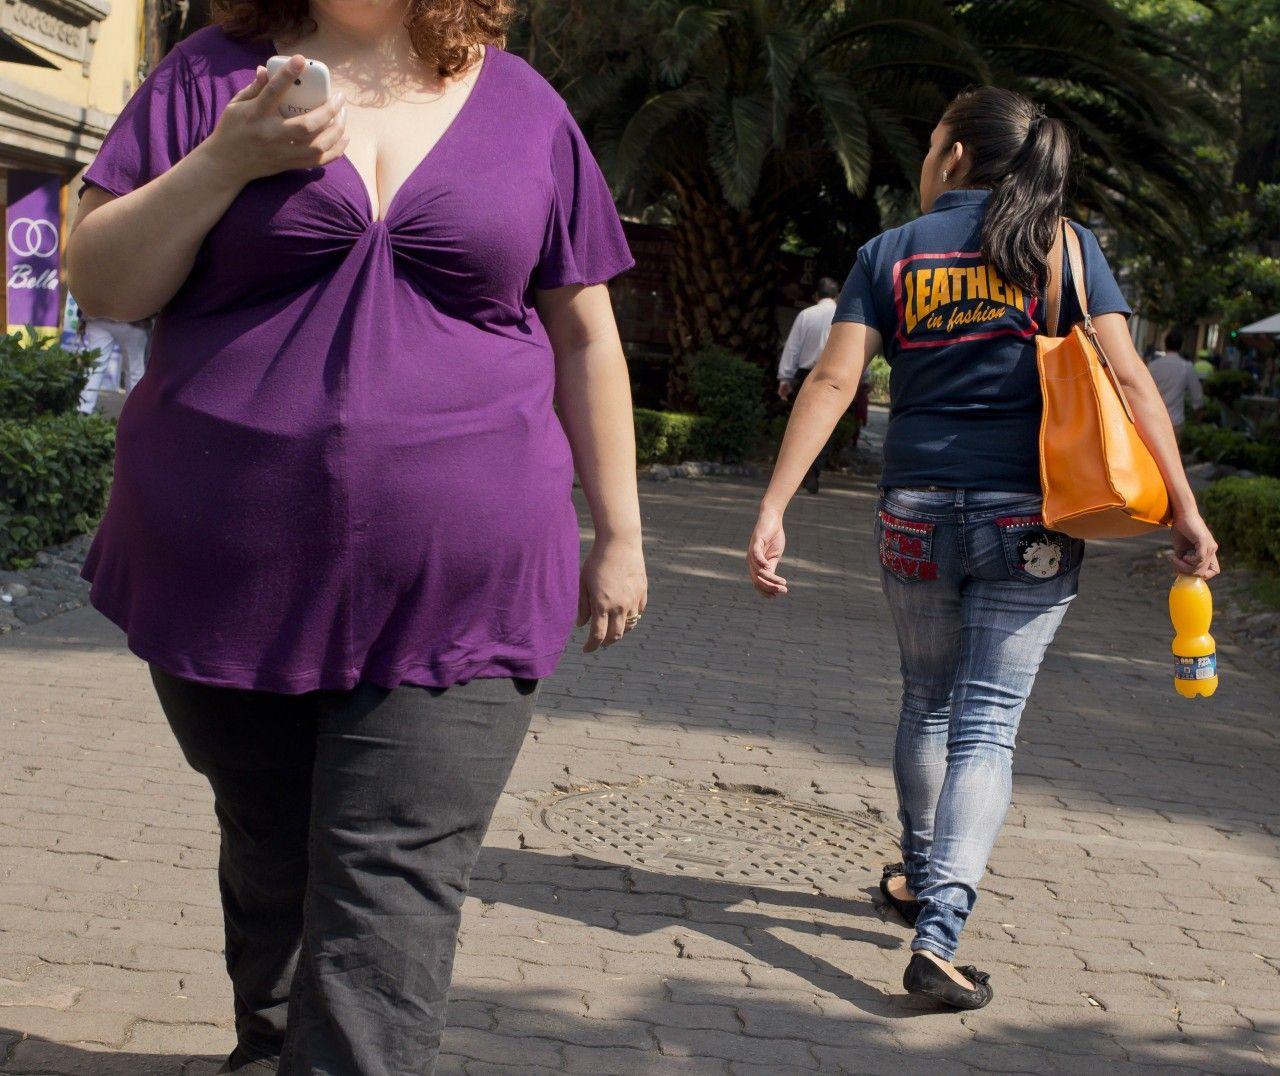 operated telling obese people - 1200×675